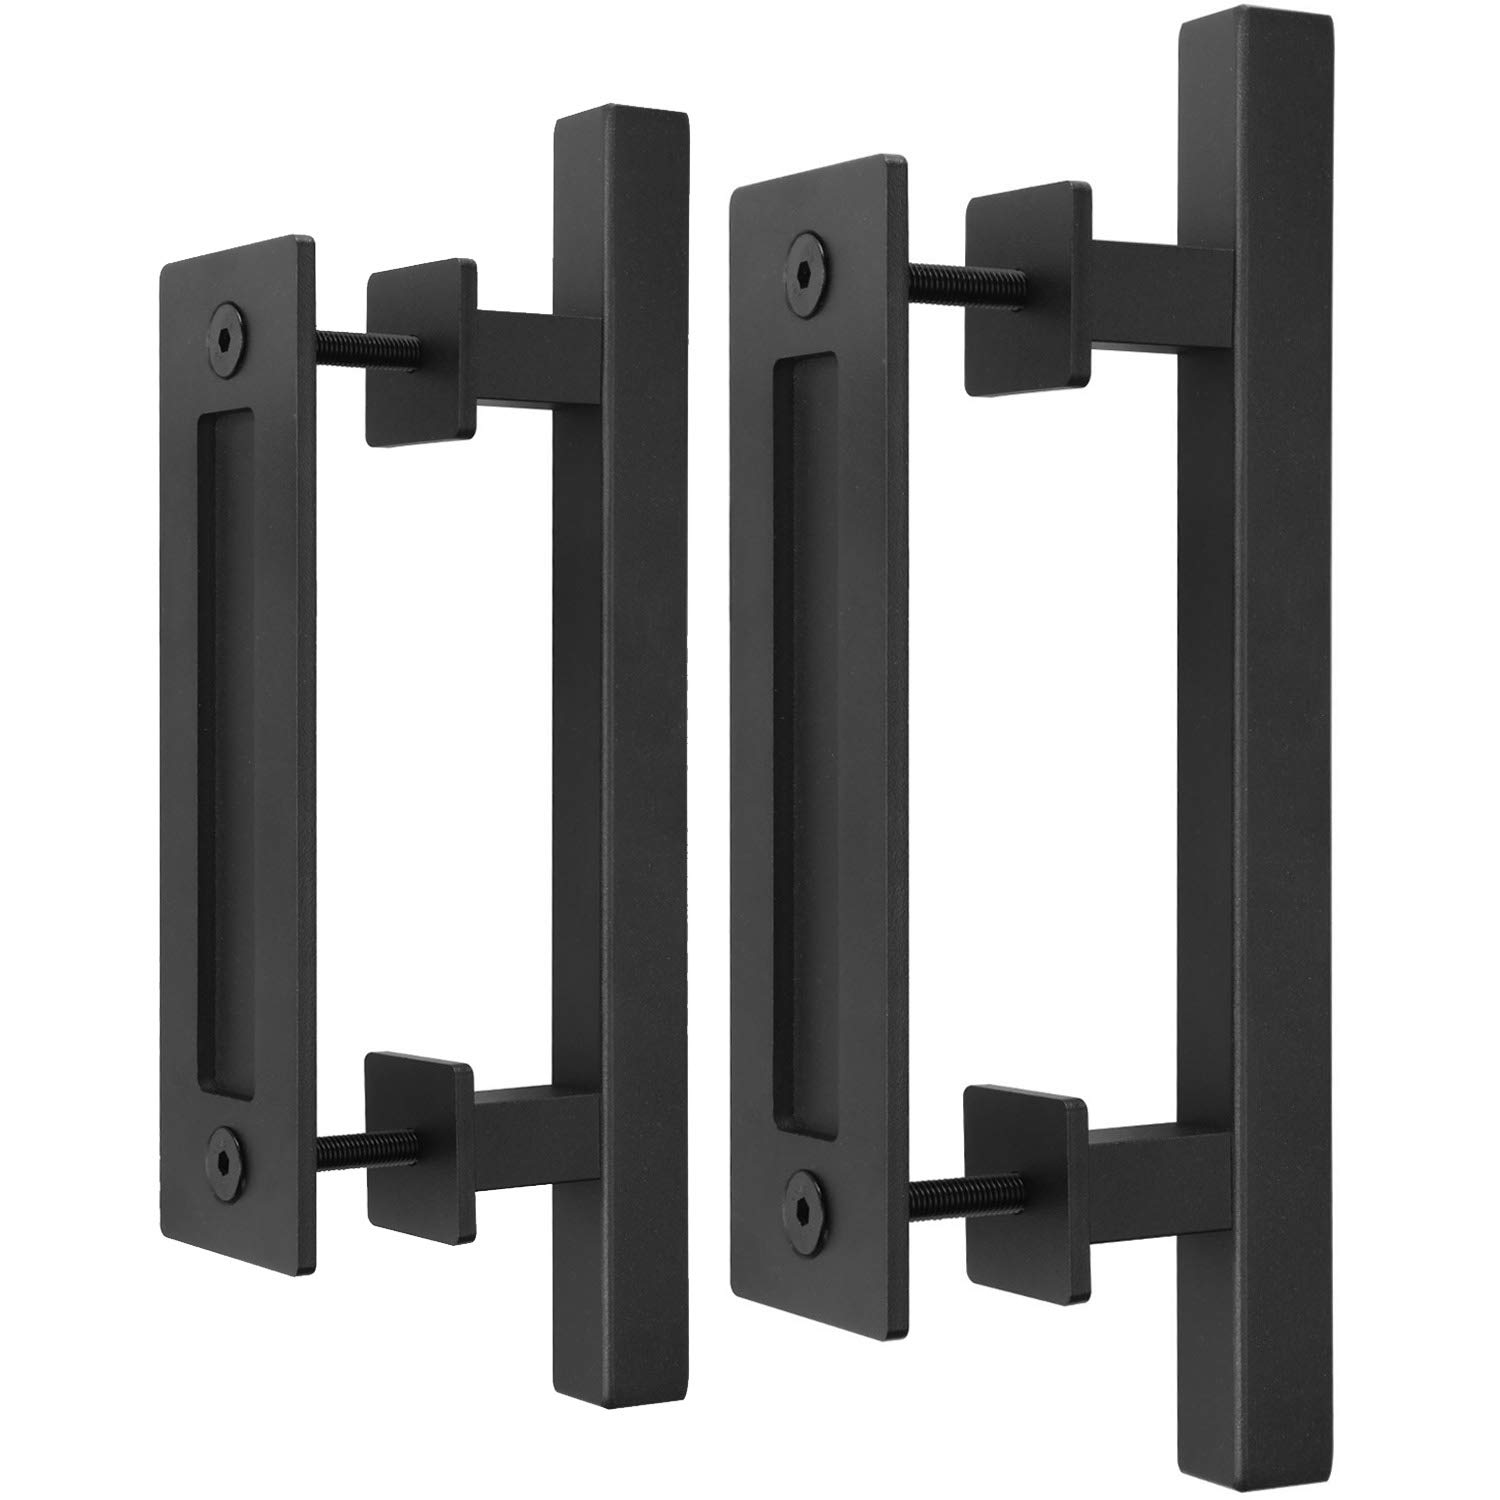 EaseLife 2Pcs 12'' Sliding Barn Door Handle with Pull Flush Set,for Gate Kitchen Furniture Cabinet Closet 2/Pack,Square